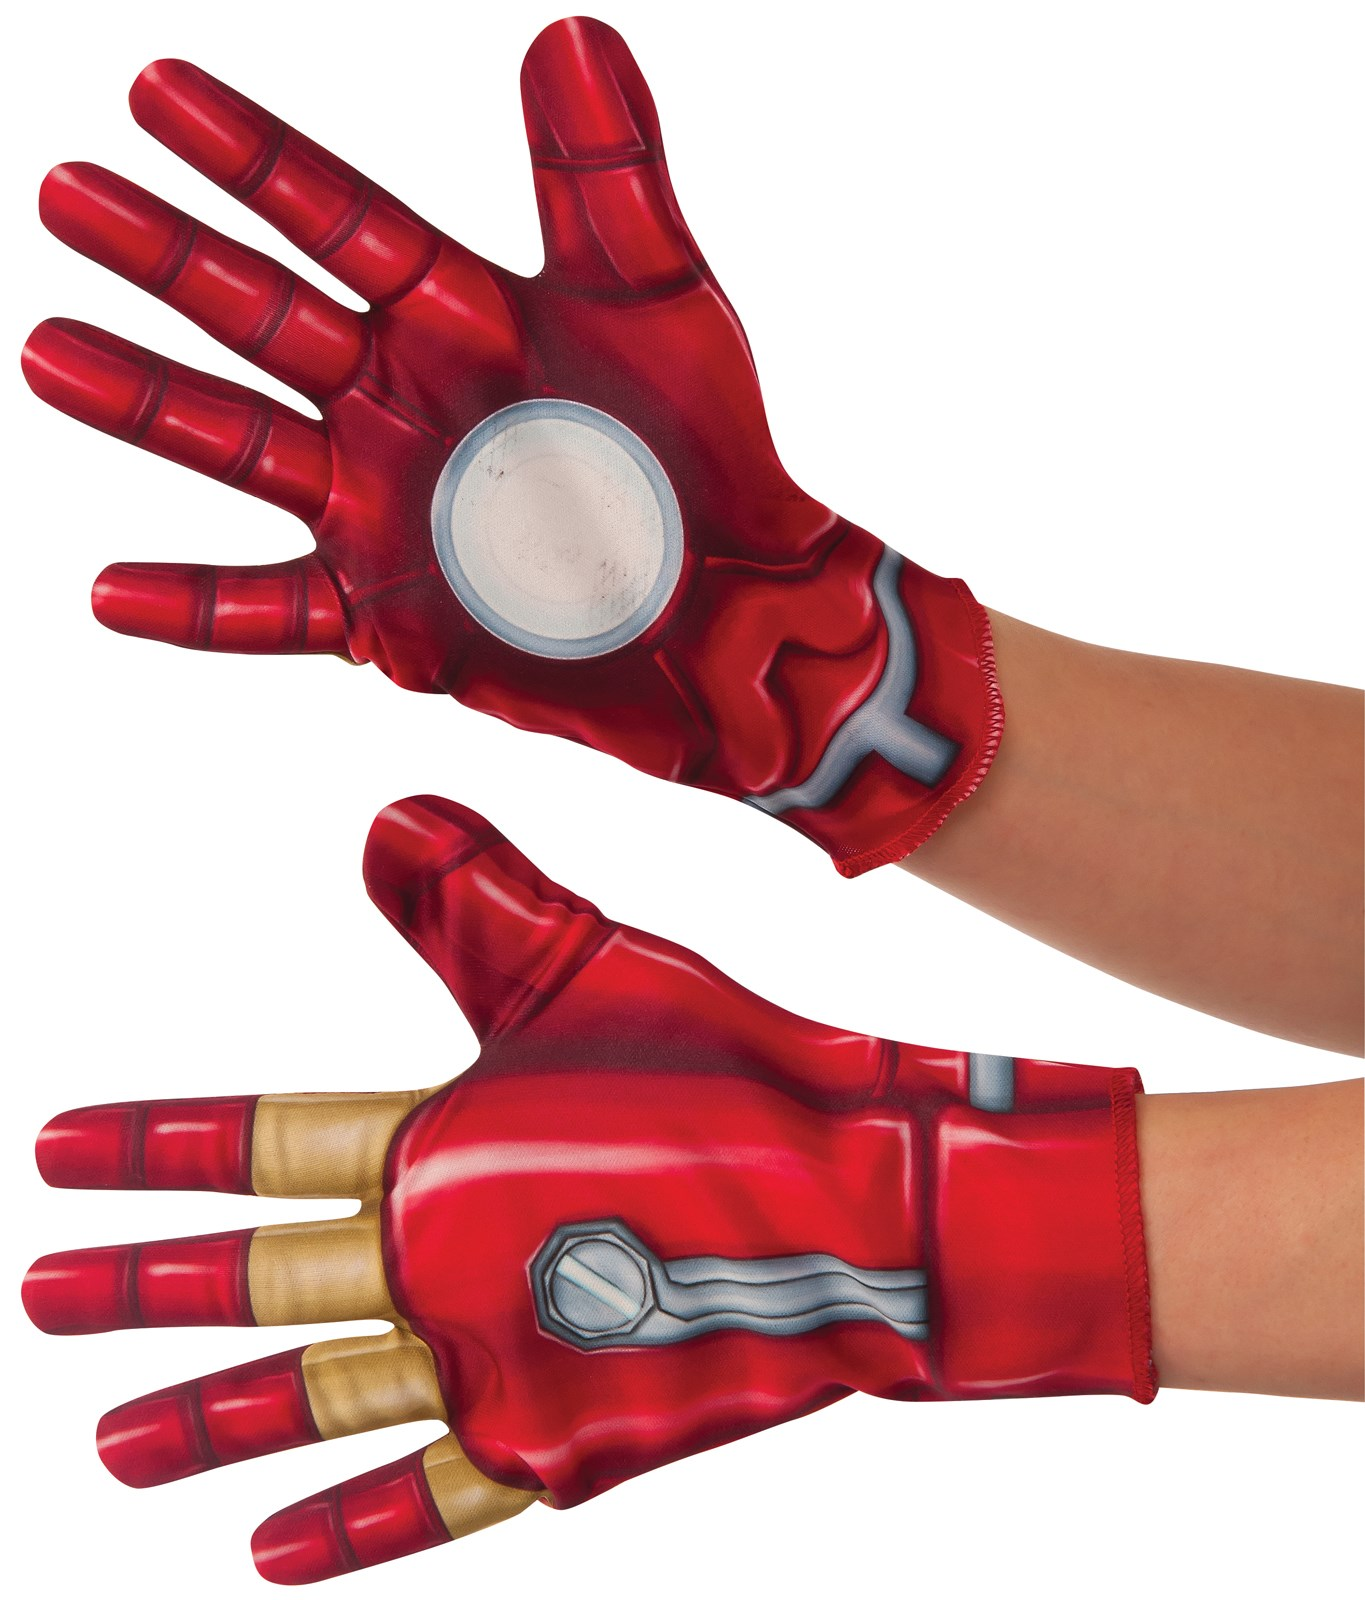 Avengers 2 - Age of Ultron: Kids Iron Man Gloves One-Size